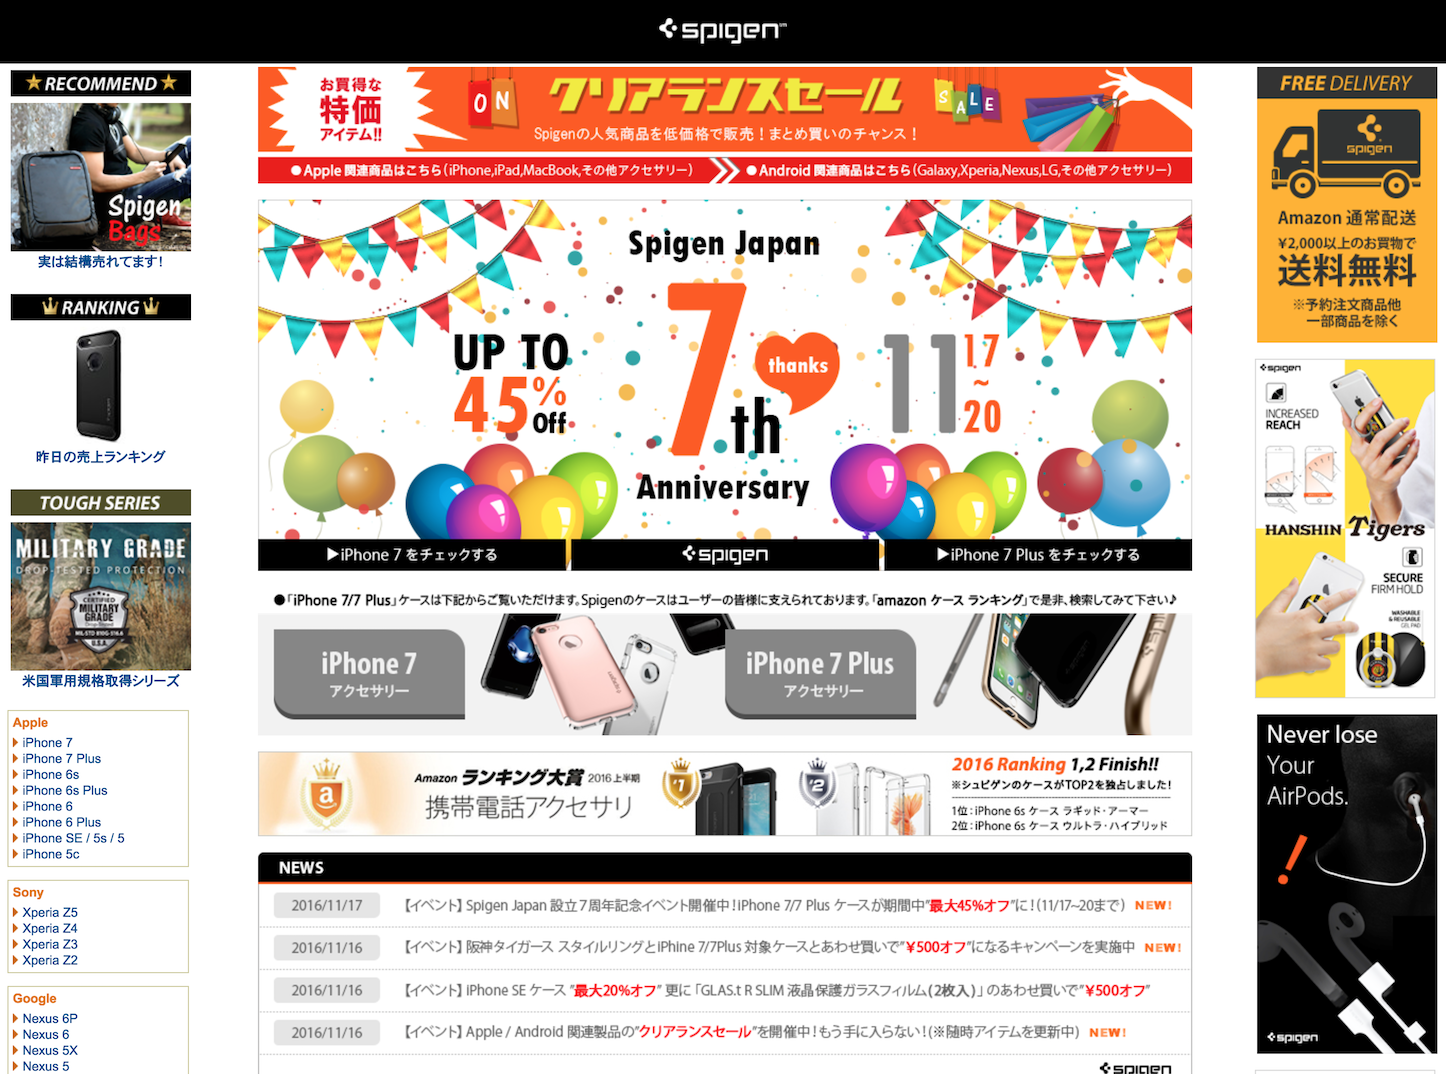 Spigen 7th anniversary sale